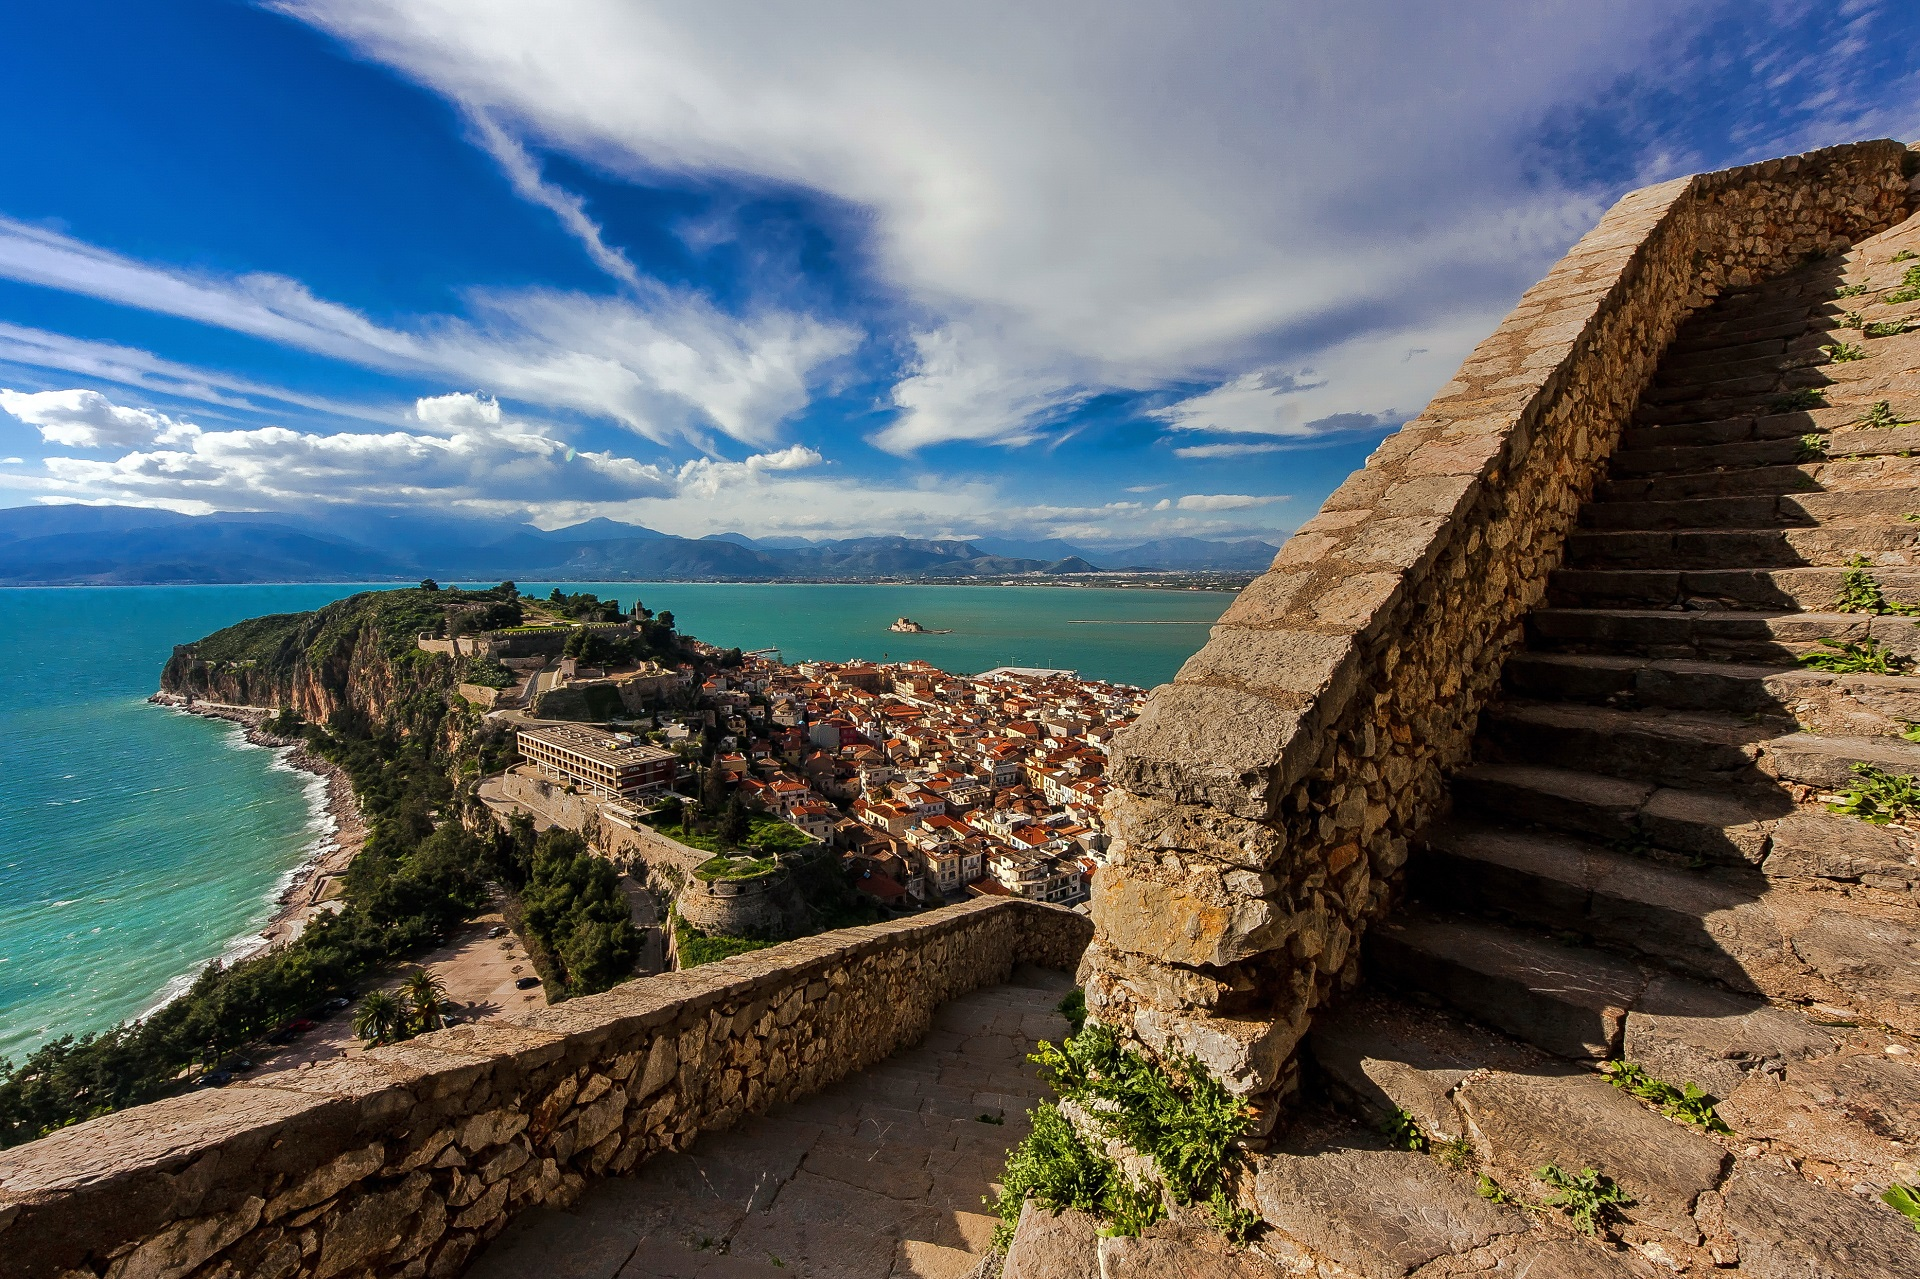 A panoramic view of the city of Naplion - Greece, from the upper steps (999 of them) that lead to the medieval castle of Palamidi